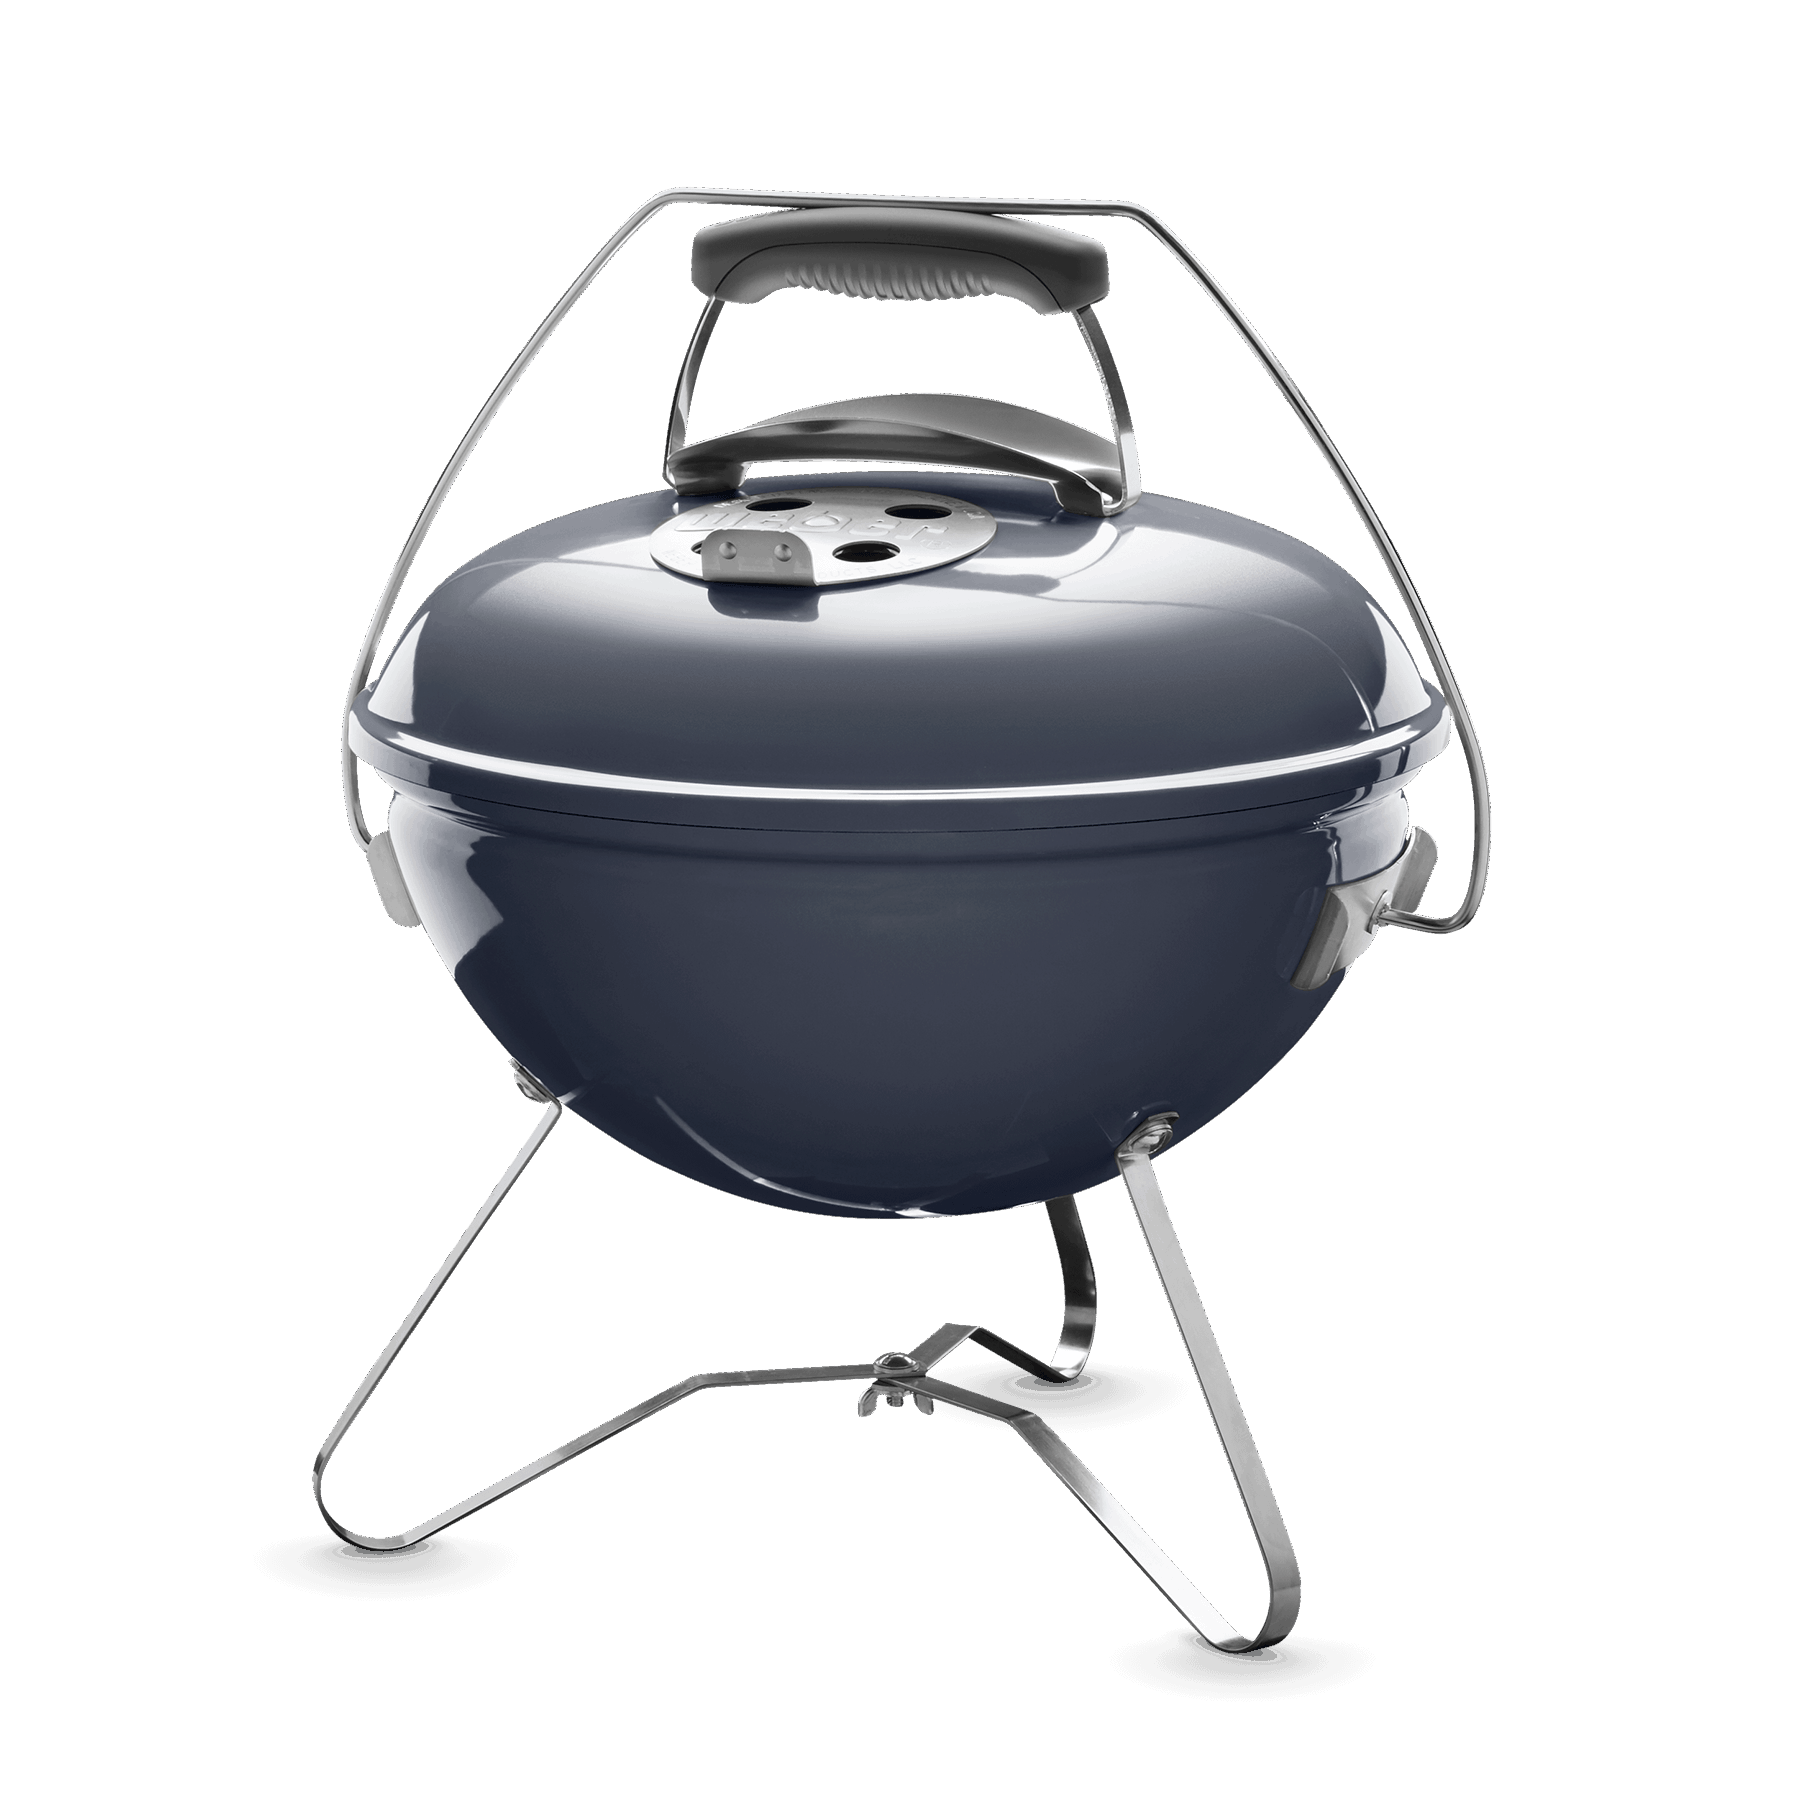 Smokey Joe® Premium Kulgrill 37 cm